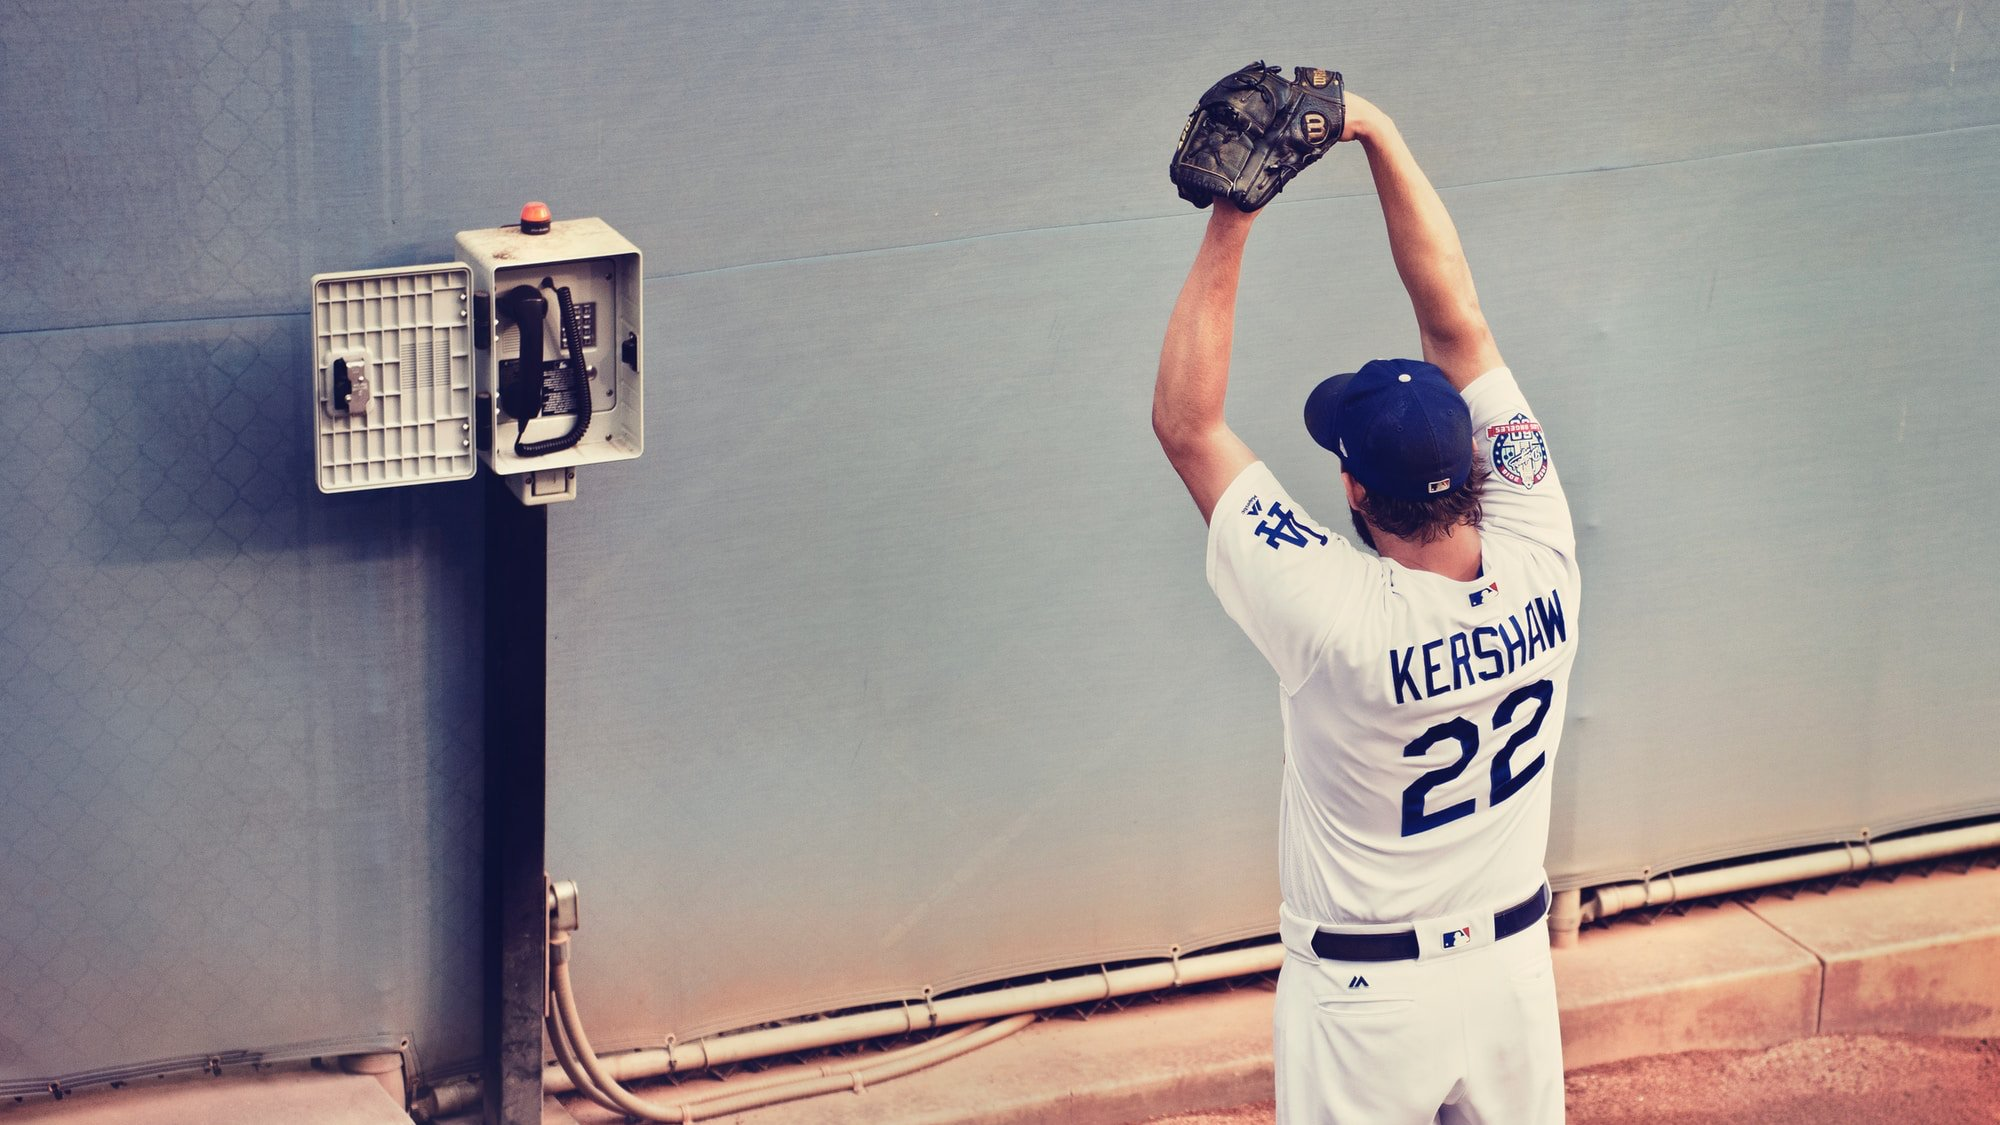 2021 World Series Odds: Dodgers Remain as Betting Favorites